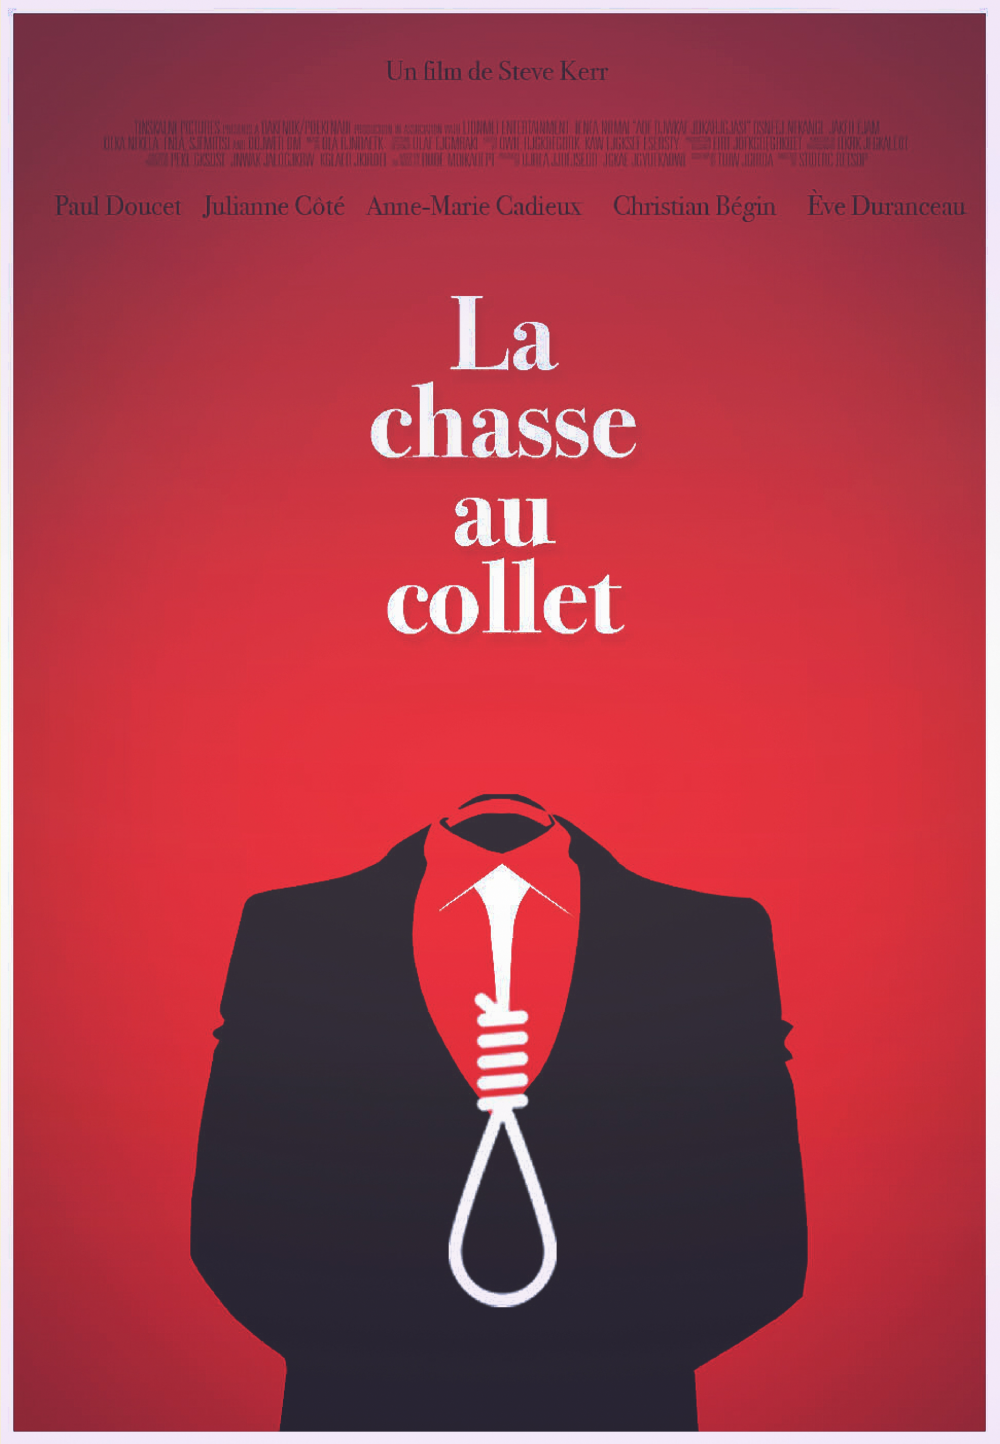 LACHASSEAUCOLLET-Poster-RENZO-28juillet_00021.PNG